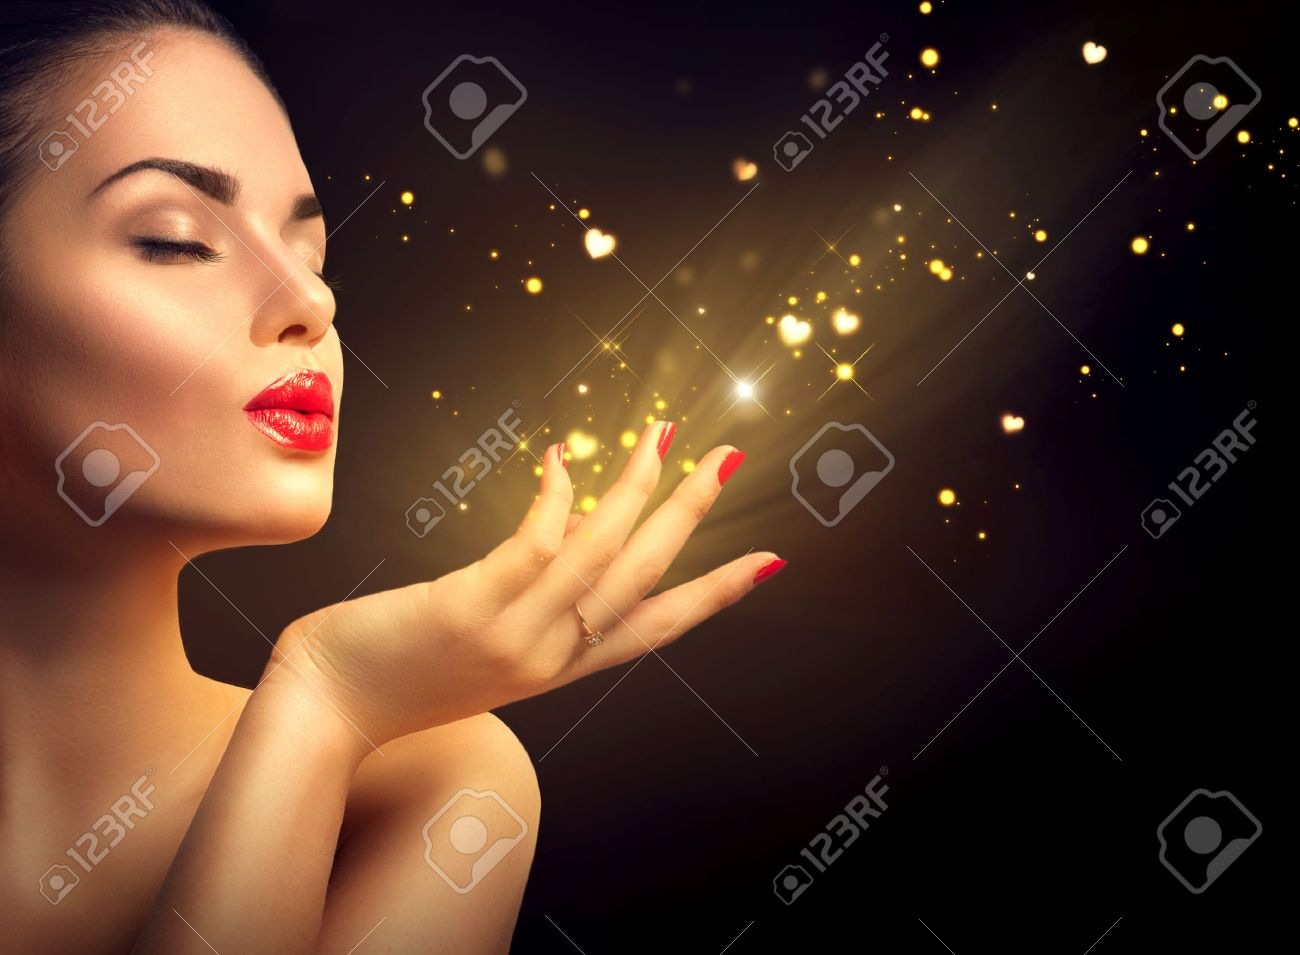 Beauty young woman blowing magic dust with golden hearts - 51755923